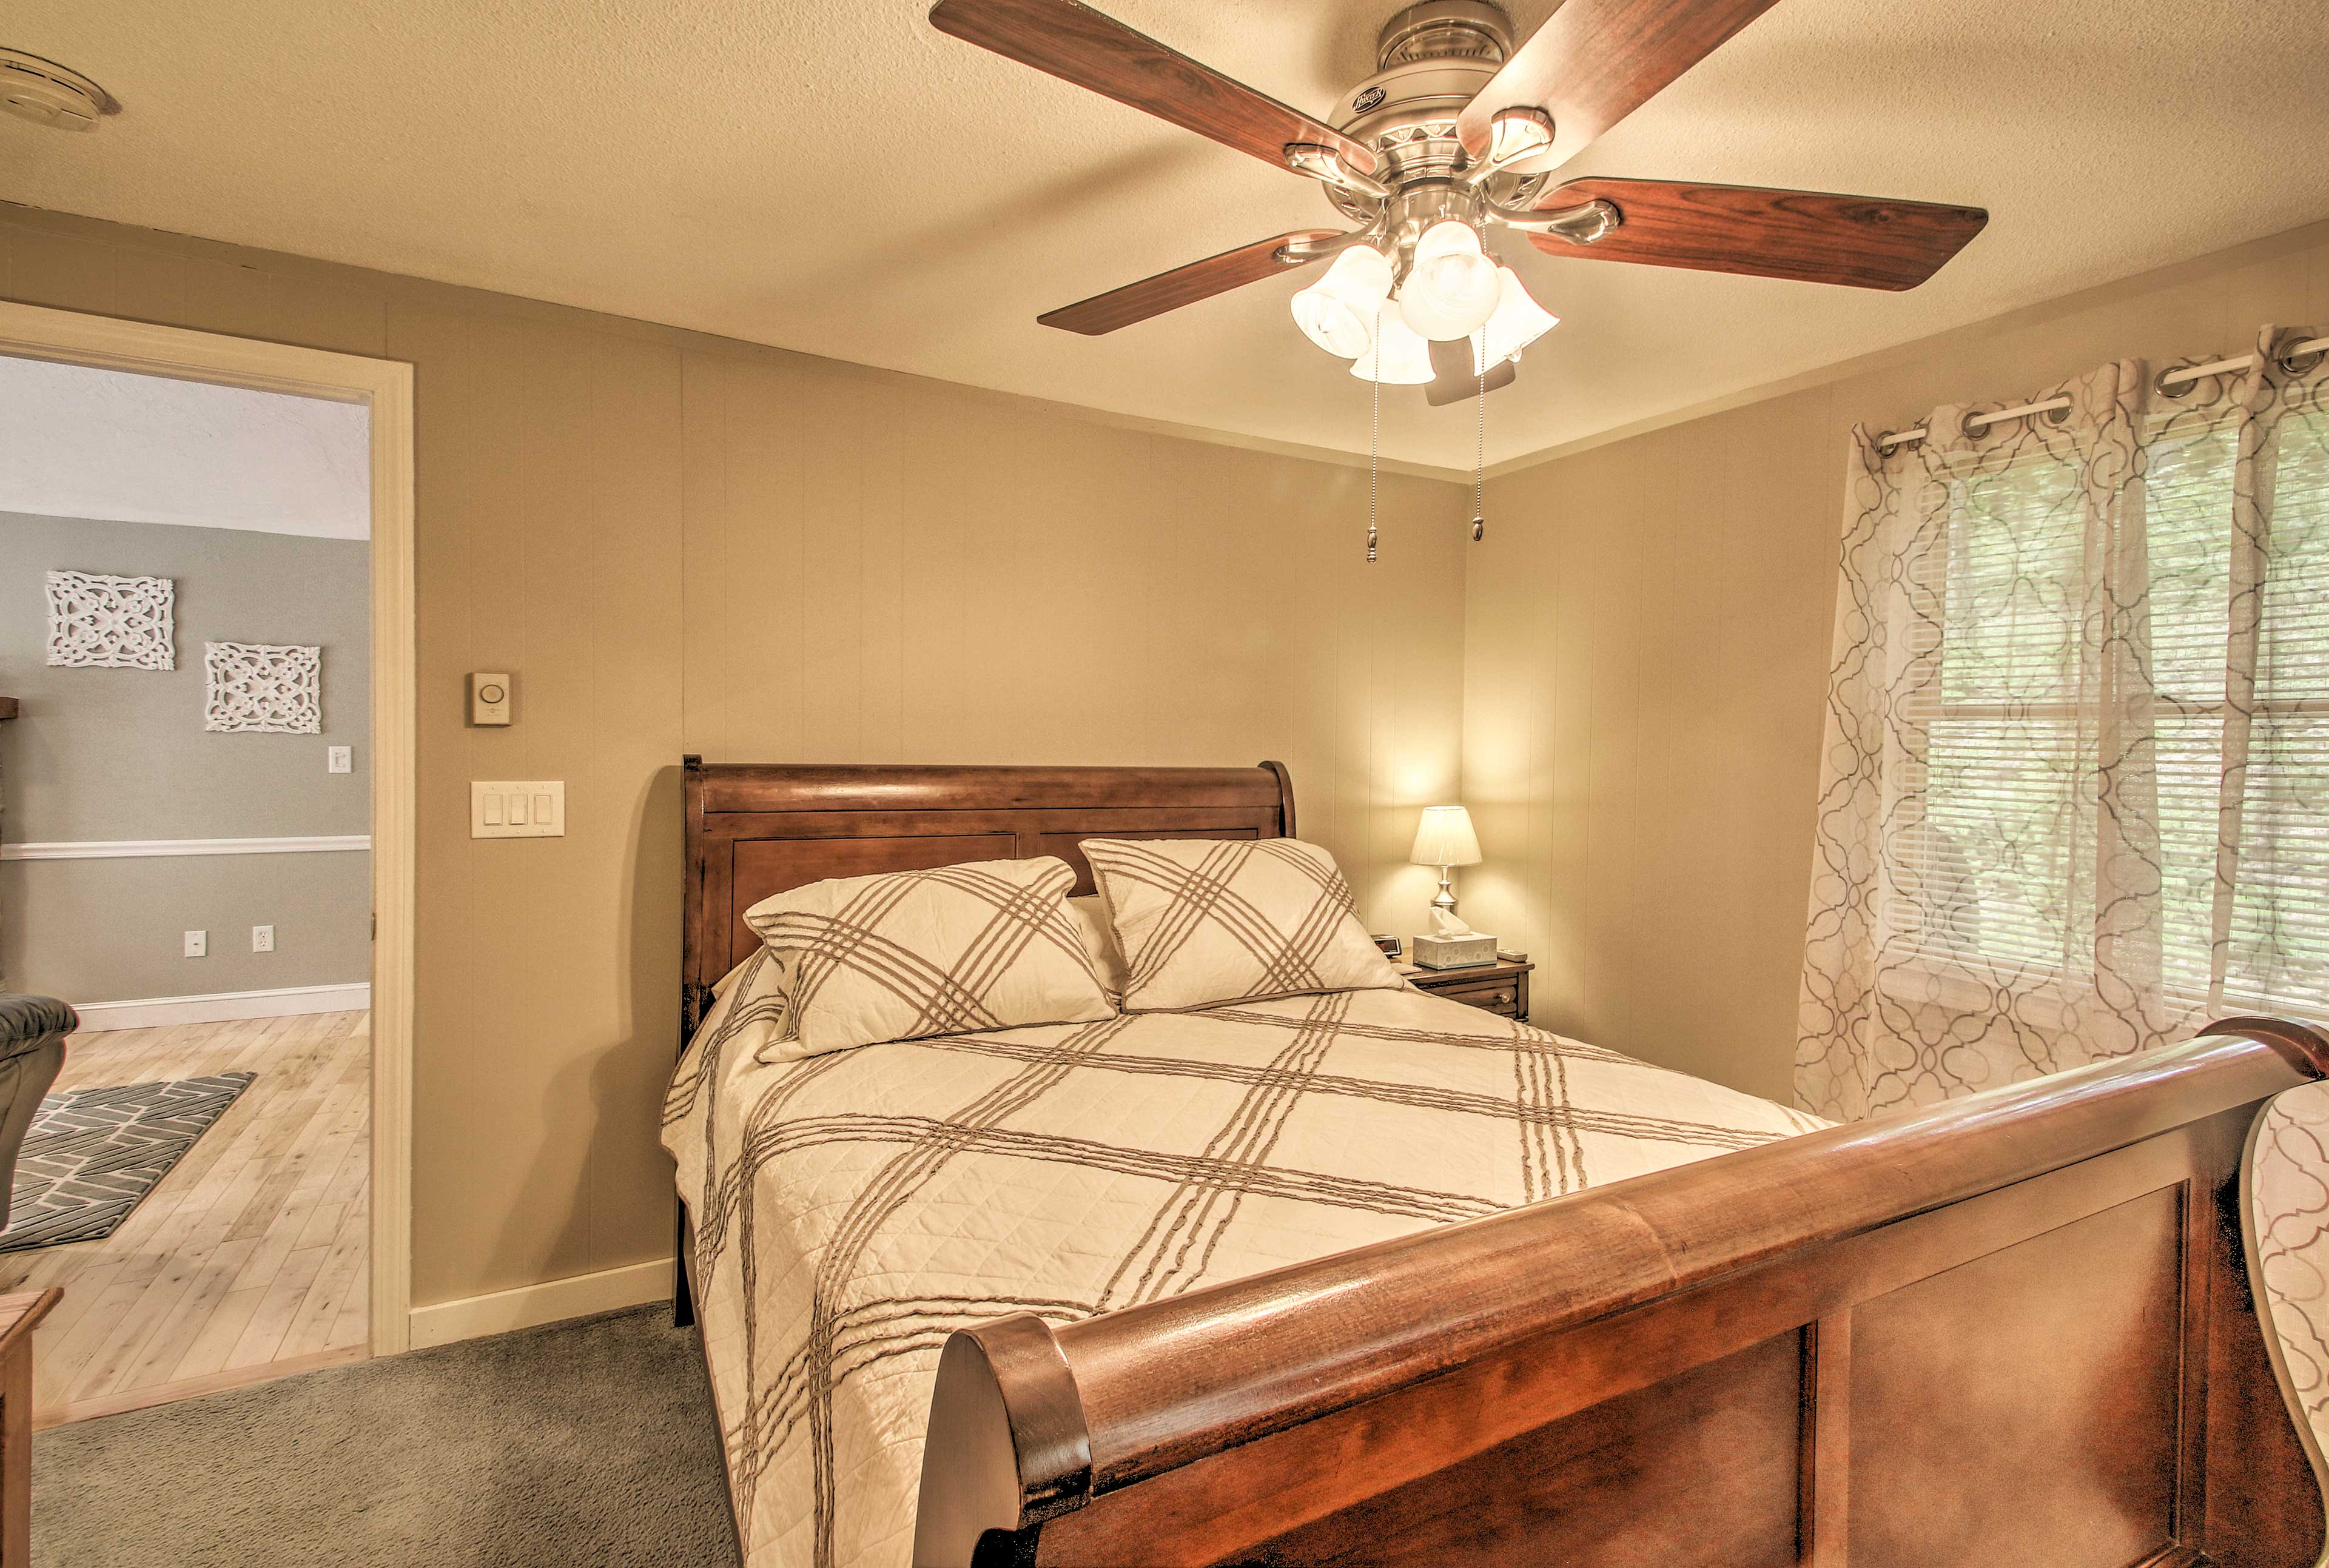 Keep cool with the ceiling fan.